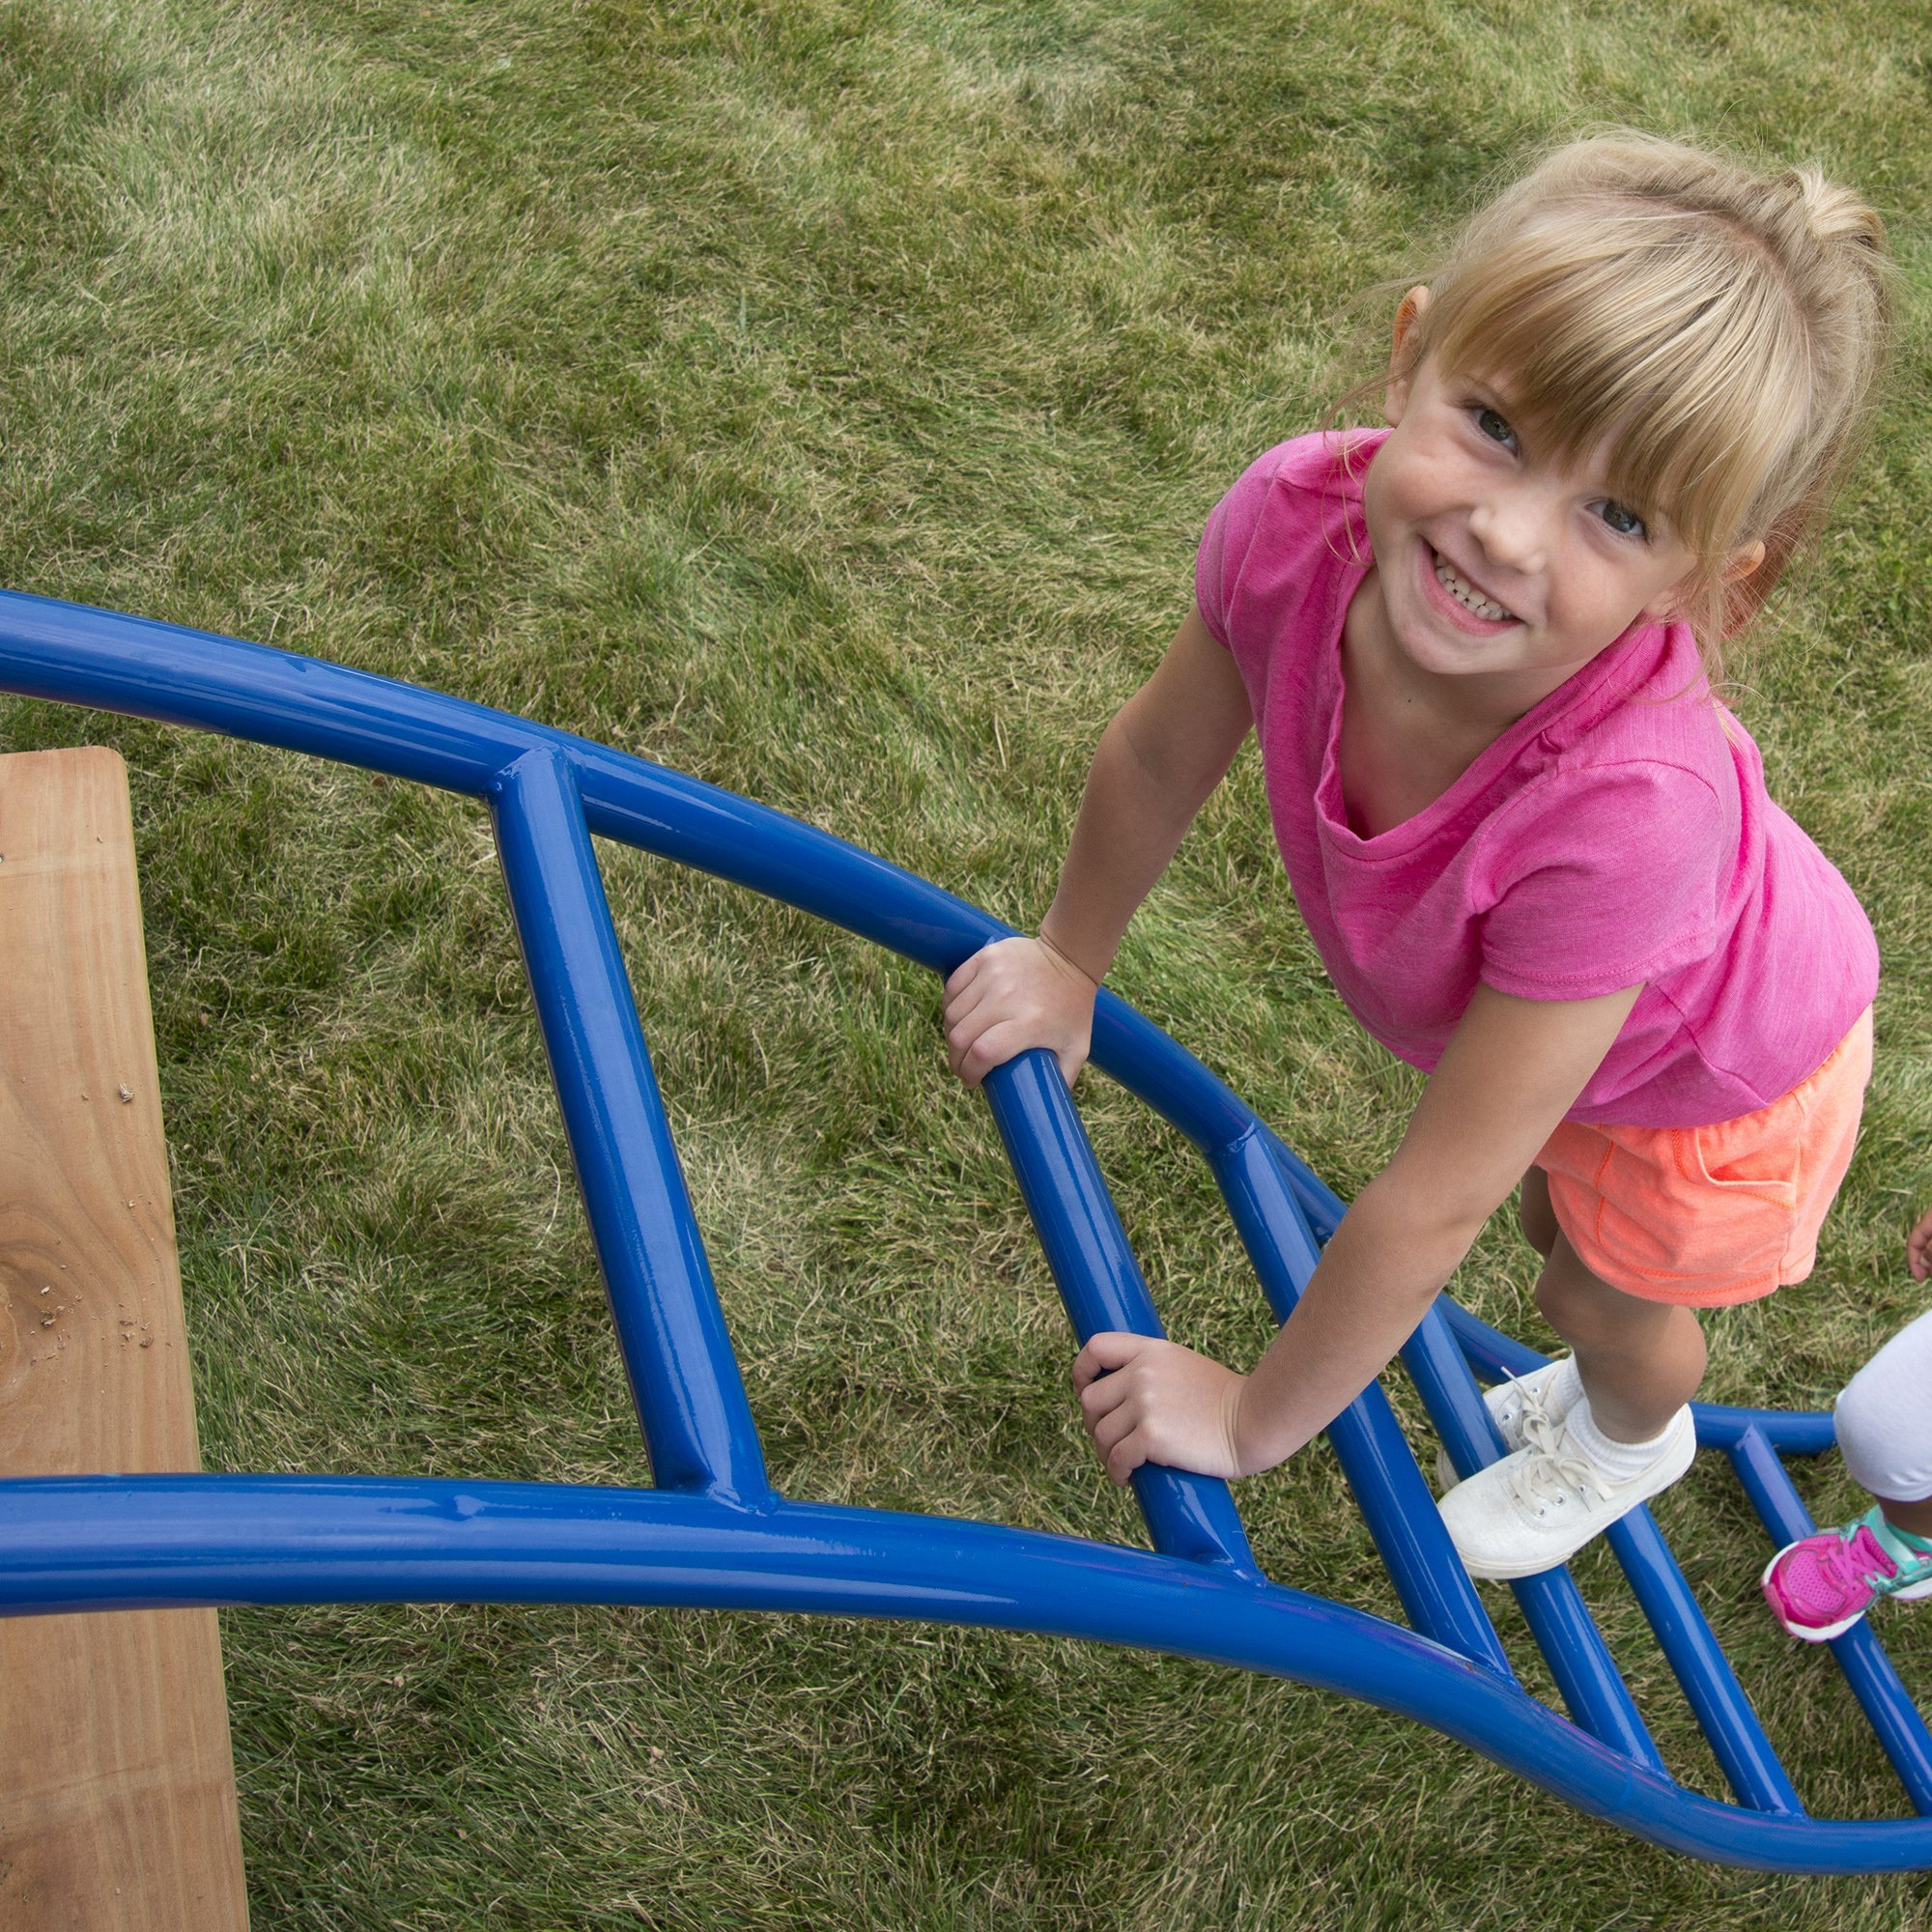 Swing-N-Slide NE 5040 Metal Arch Ladder with Multiple Configurations for Swing Sets, Play Sets & Playhouses, Blue & Red by Swing-N-Slide (Image #5)